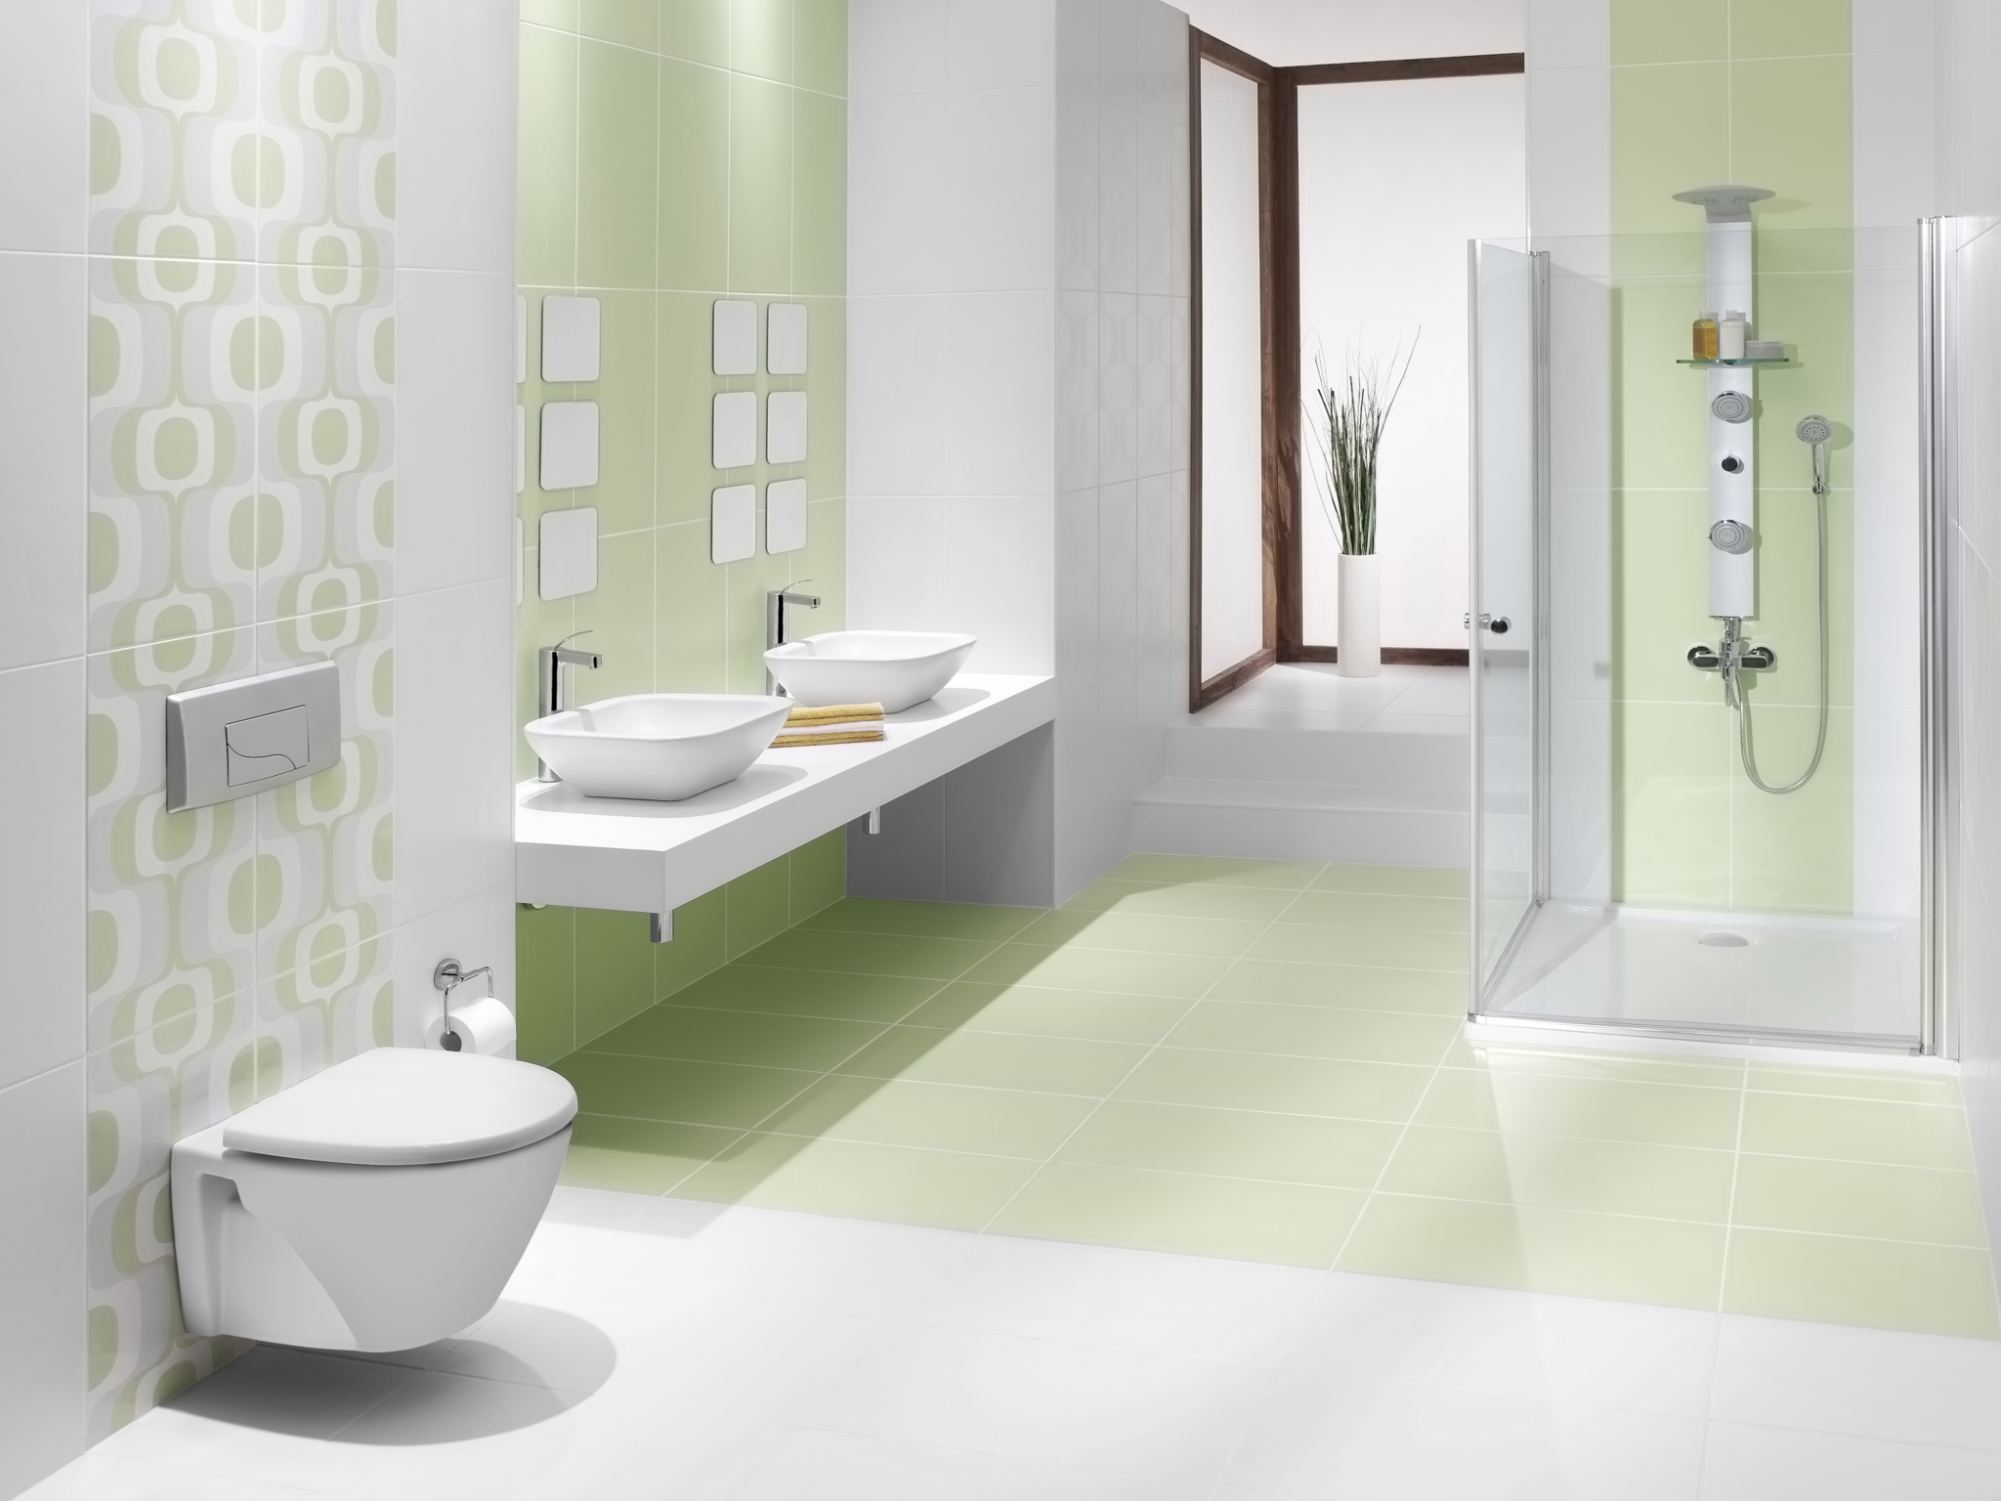 Bring Green Color To Your Bathroom With Tiles